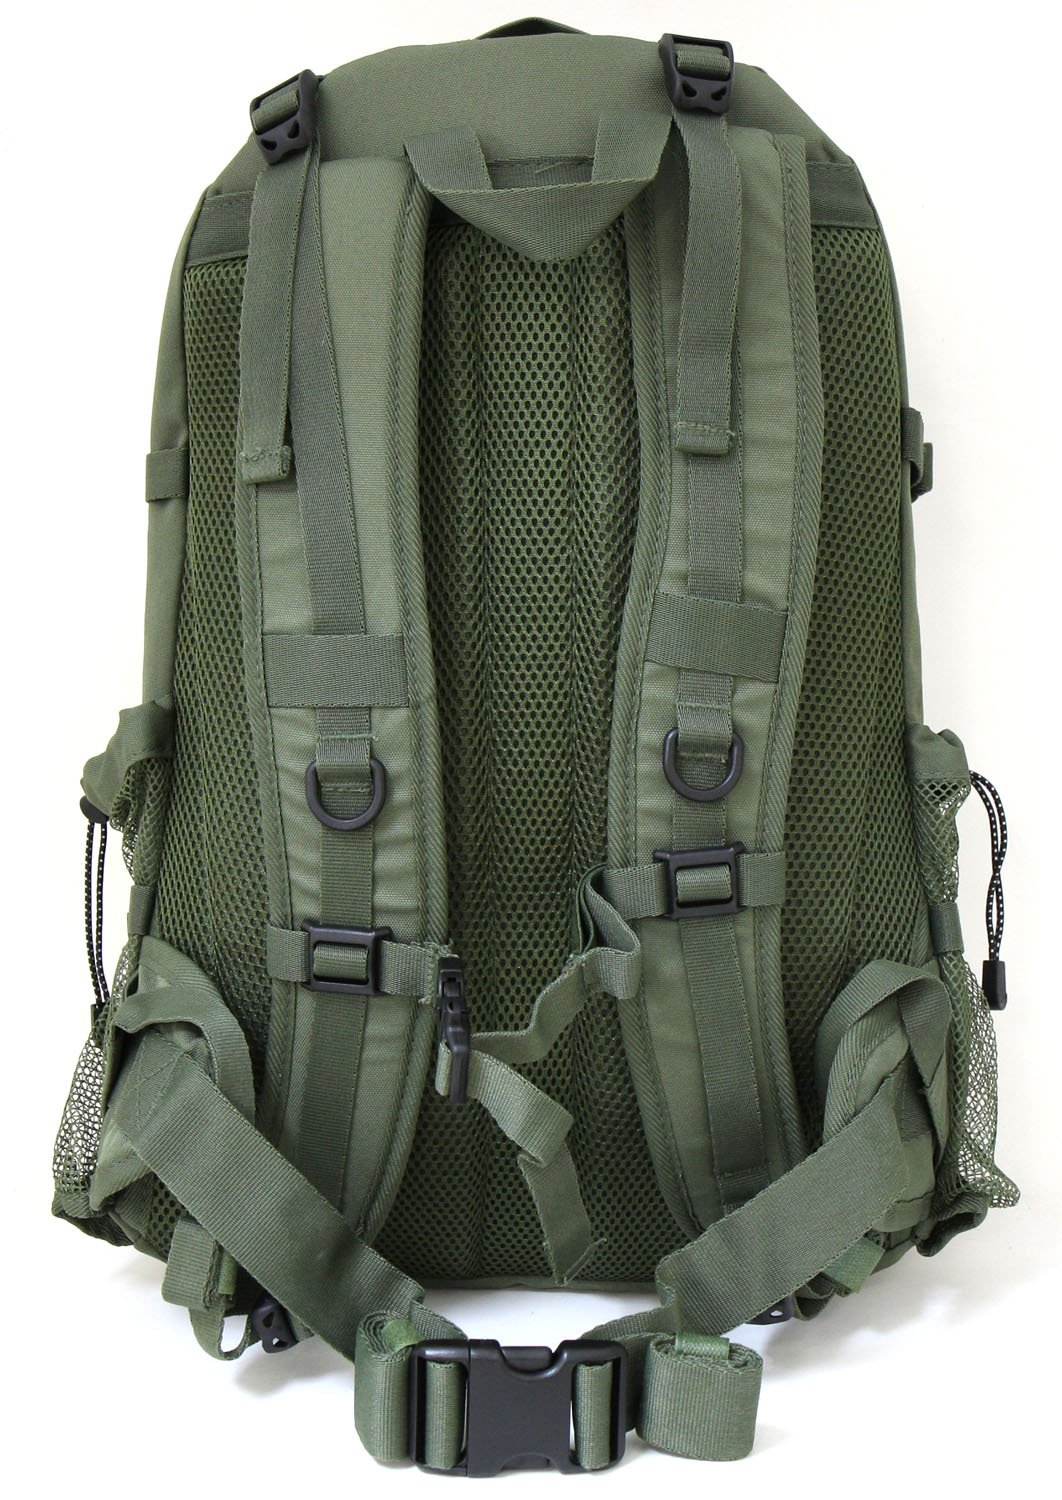 Snugpak Xocet 35 Backpack, Olive